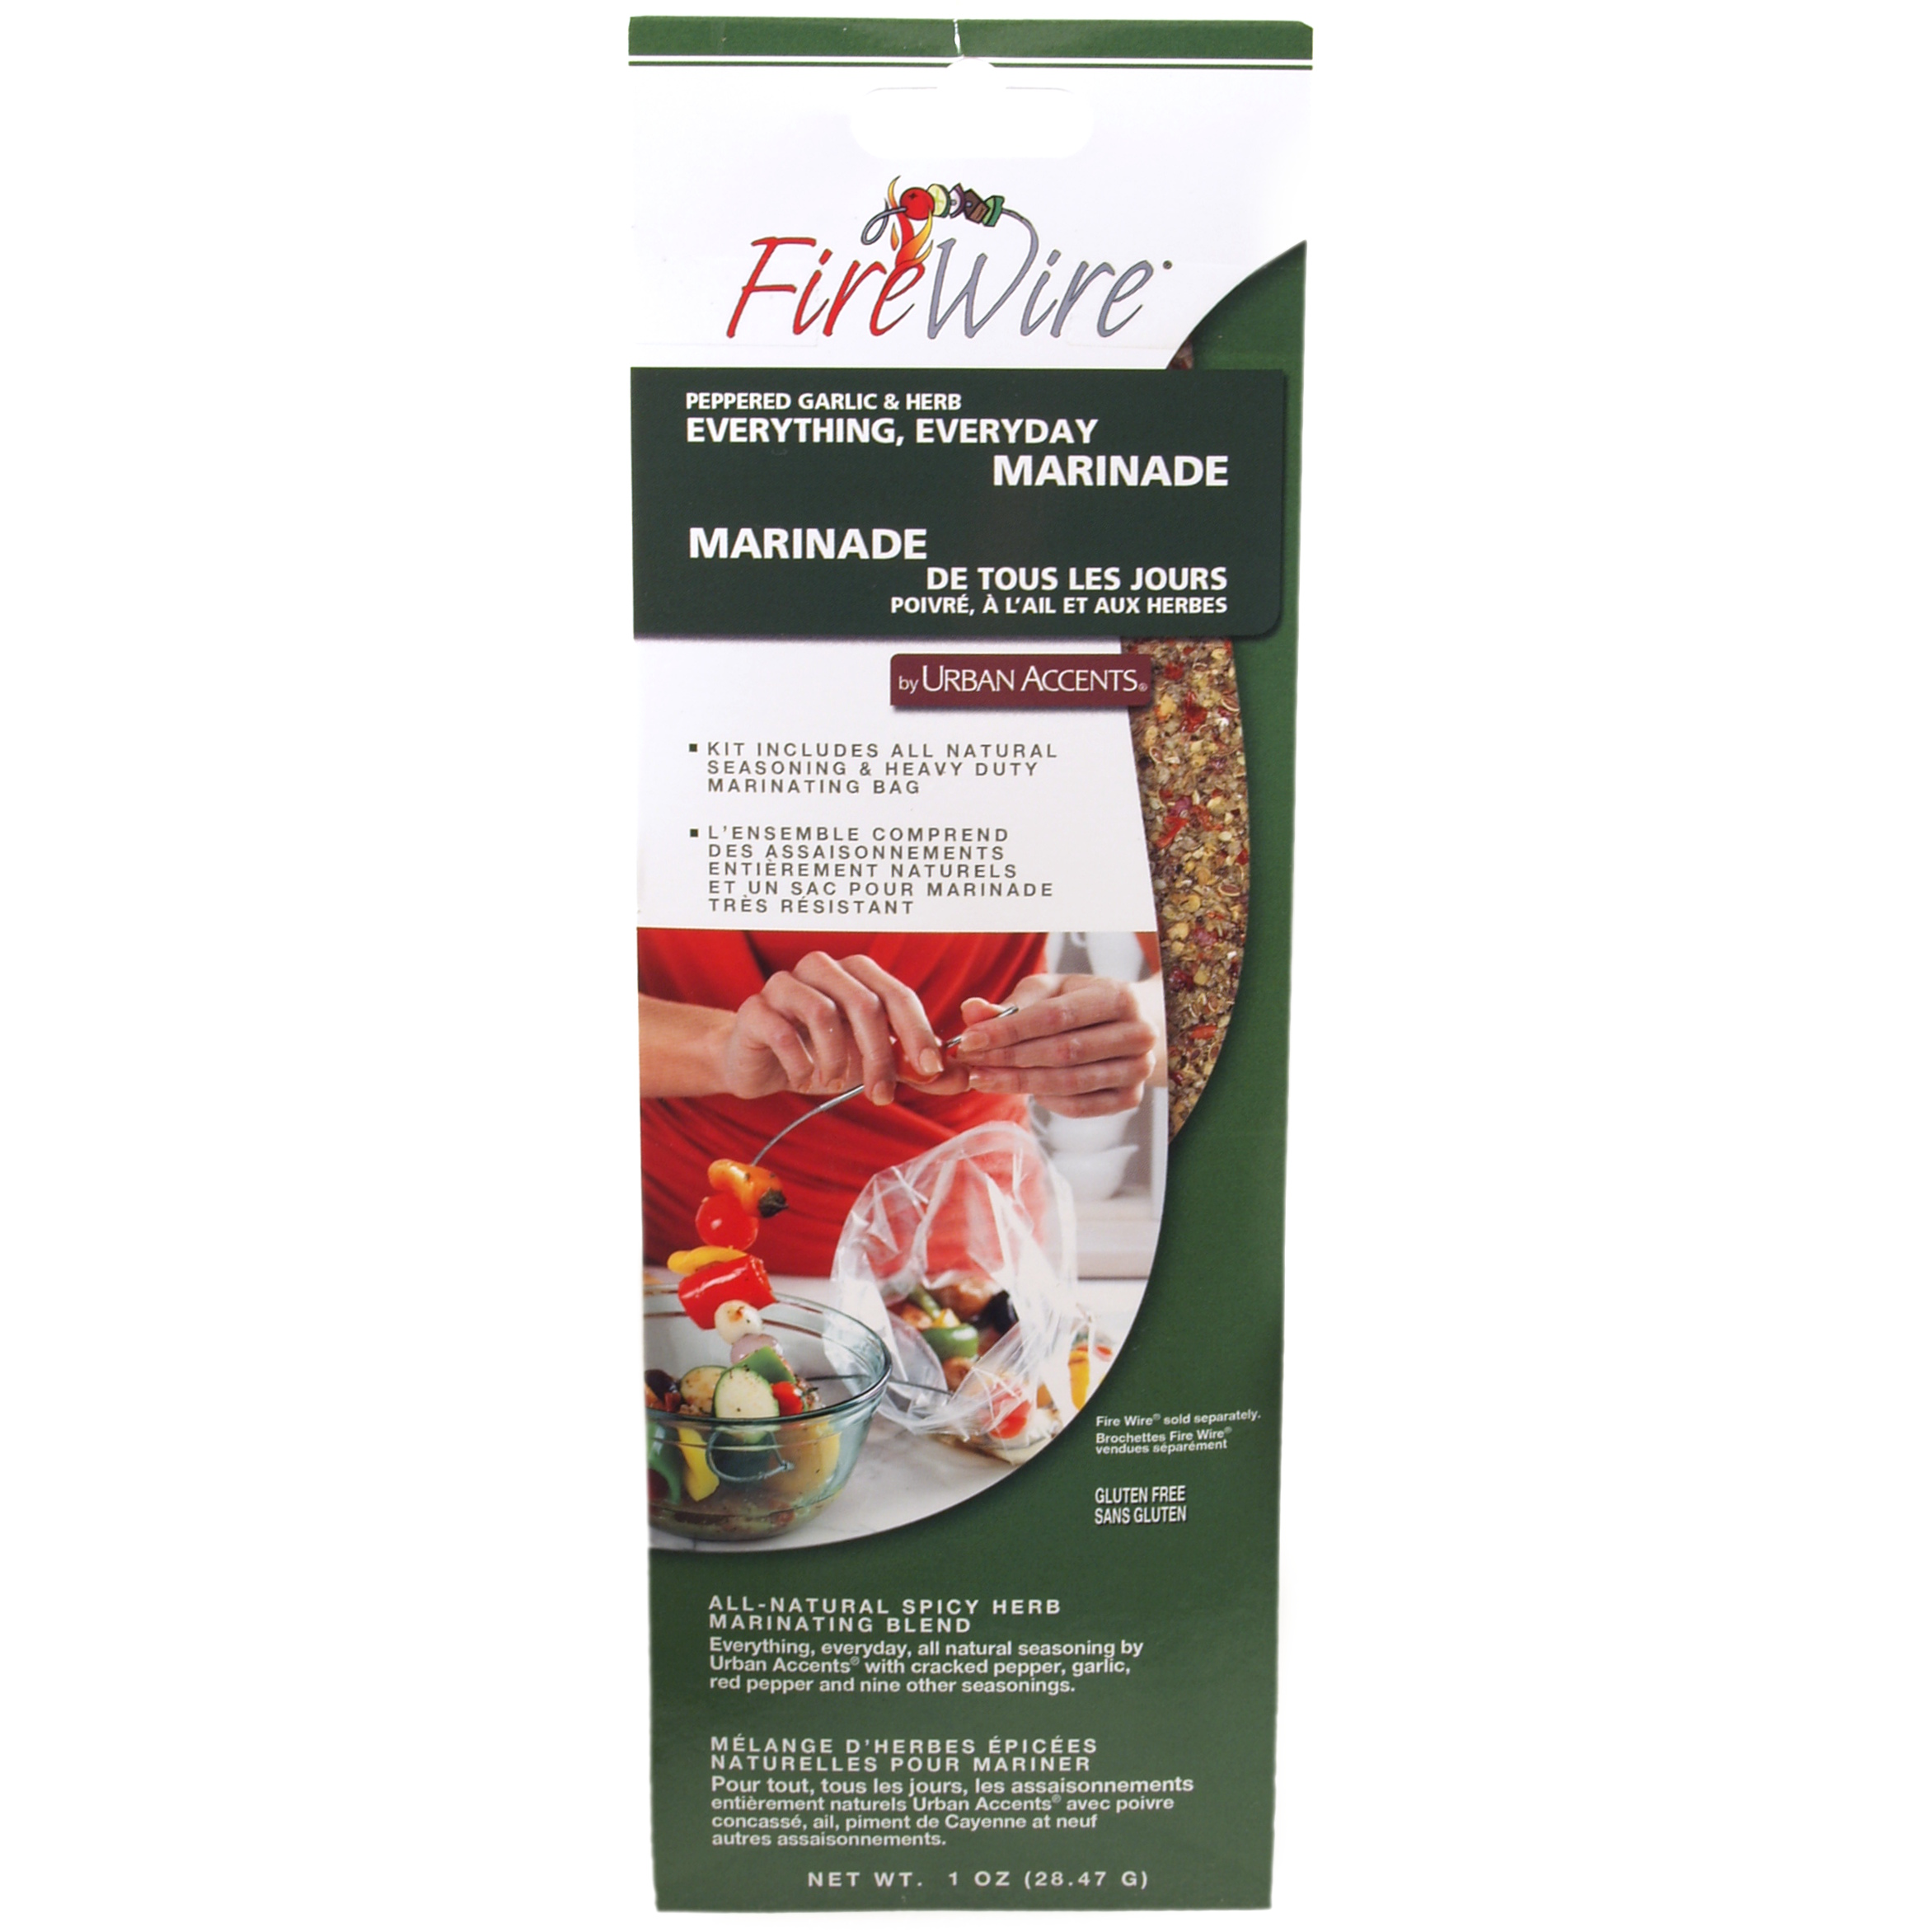 Fire Wire Peppered Garlic and Herb Marinating Kit